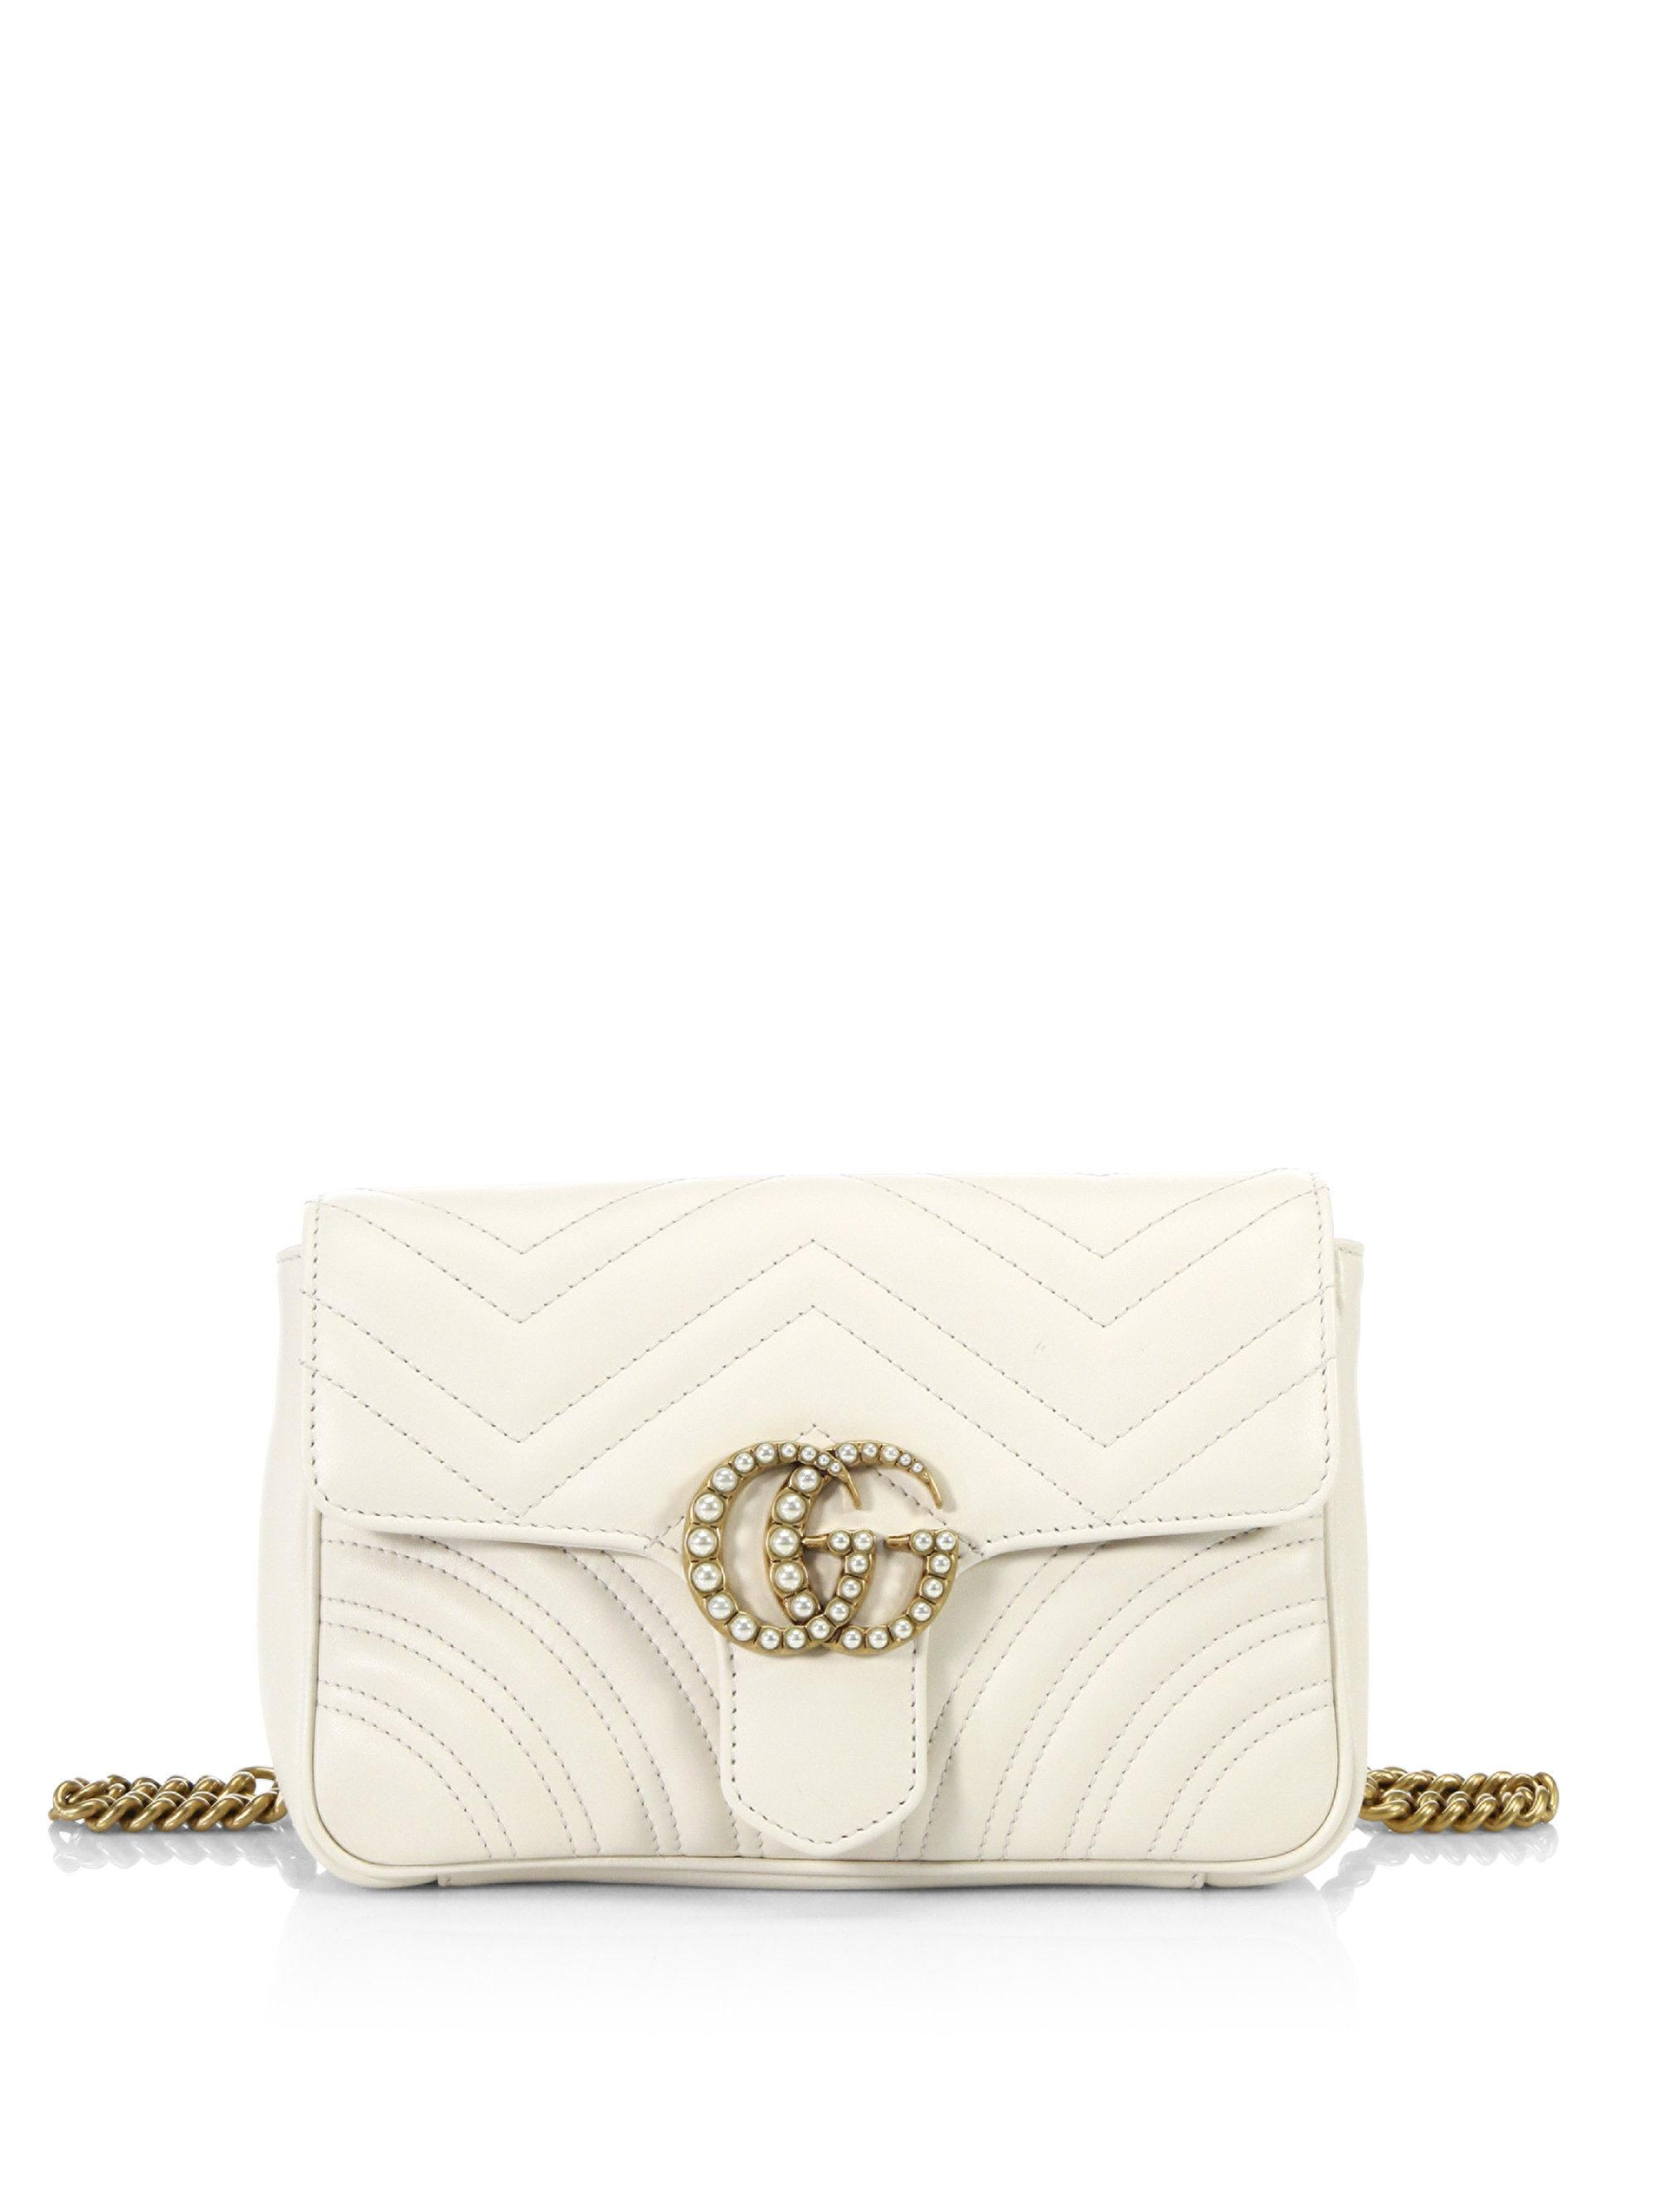 af2c5d2ff1c063 Gucci Gg Marmont Quilted Leather Chain Belt Bag in White - Lyst